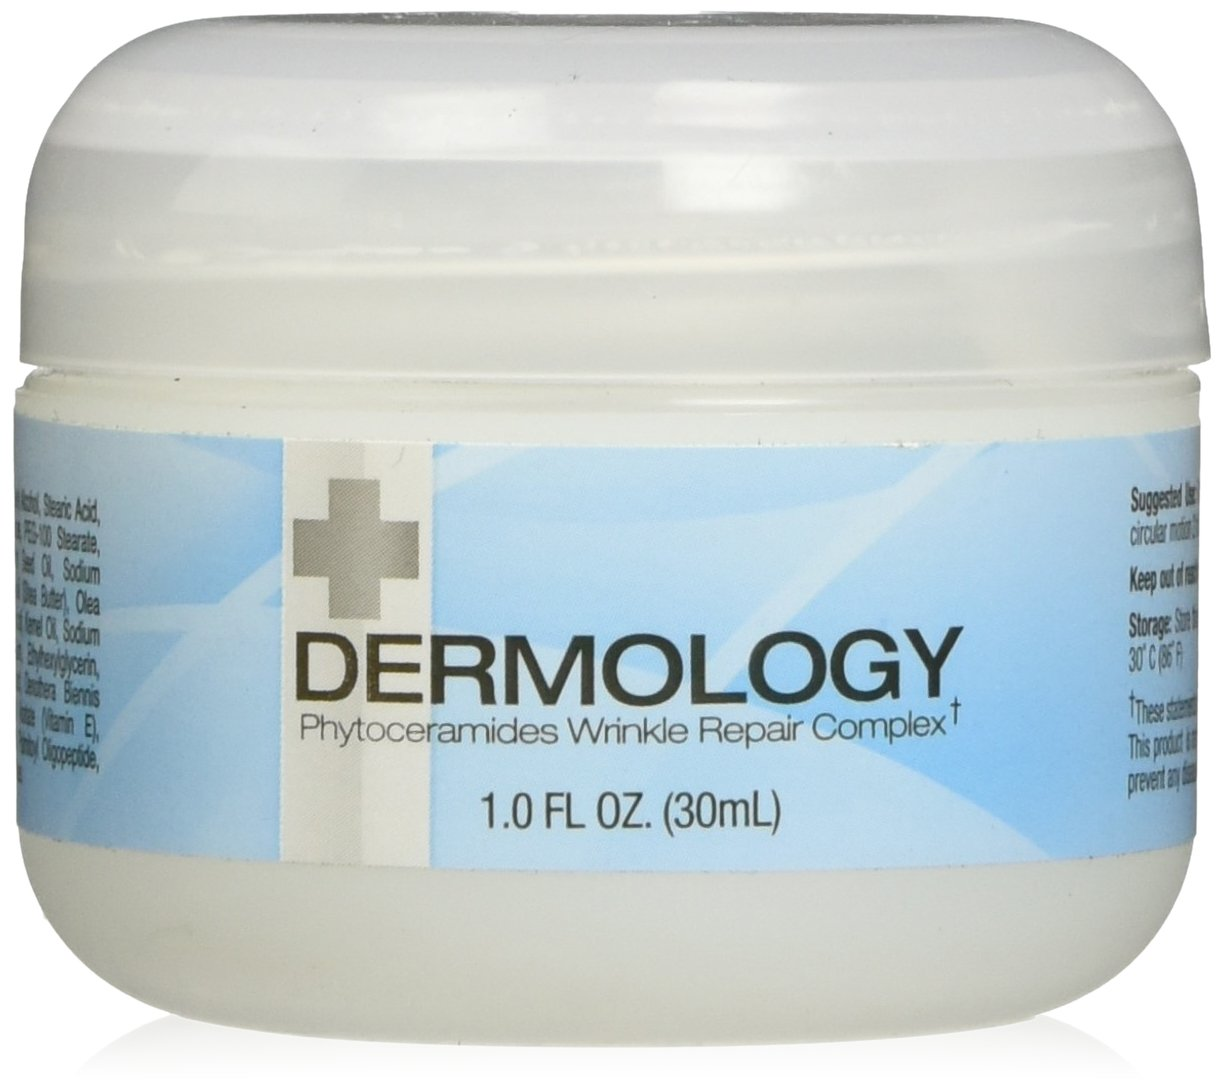 Dermology Anti Aging Cream Phytoceramides Wrinkle Repair Complex - Argireline and Hyaluronic Acid Moisturizing Cream - Supports Collagen Production - 1oz jar